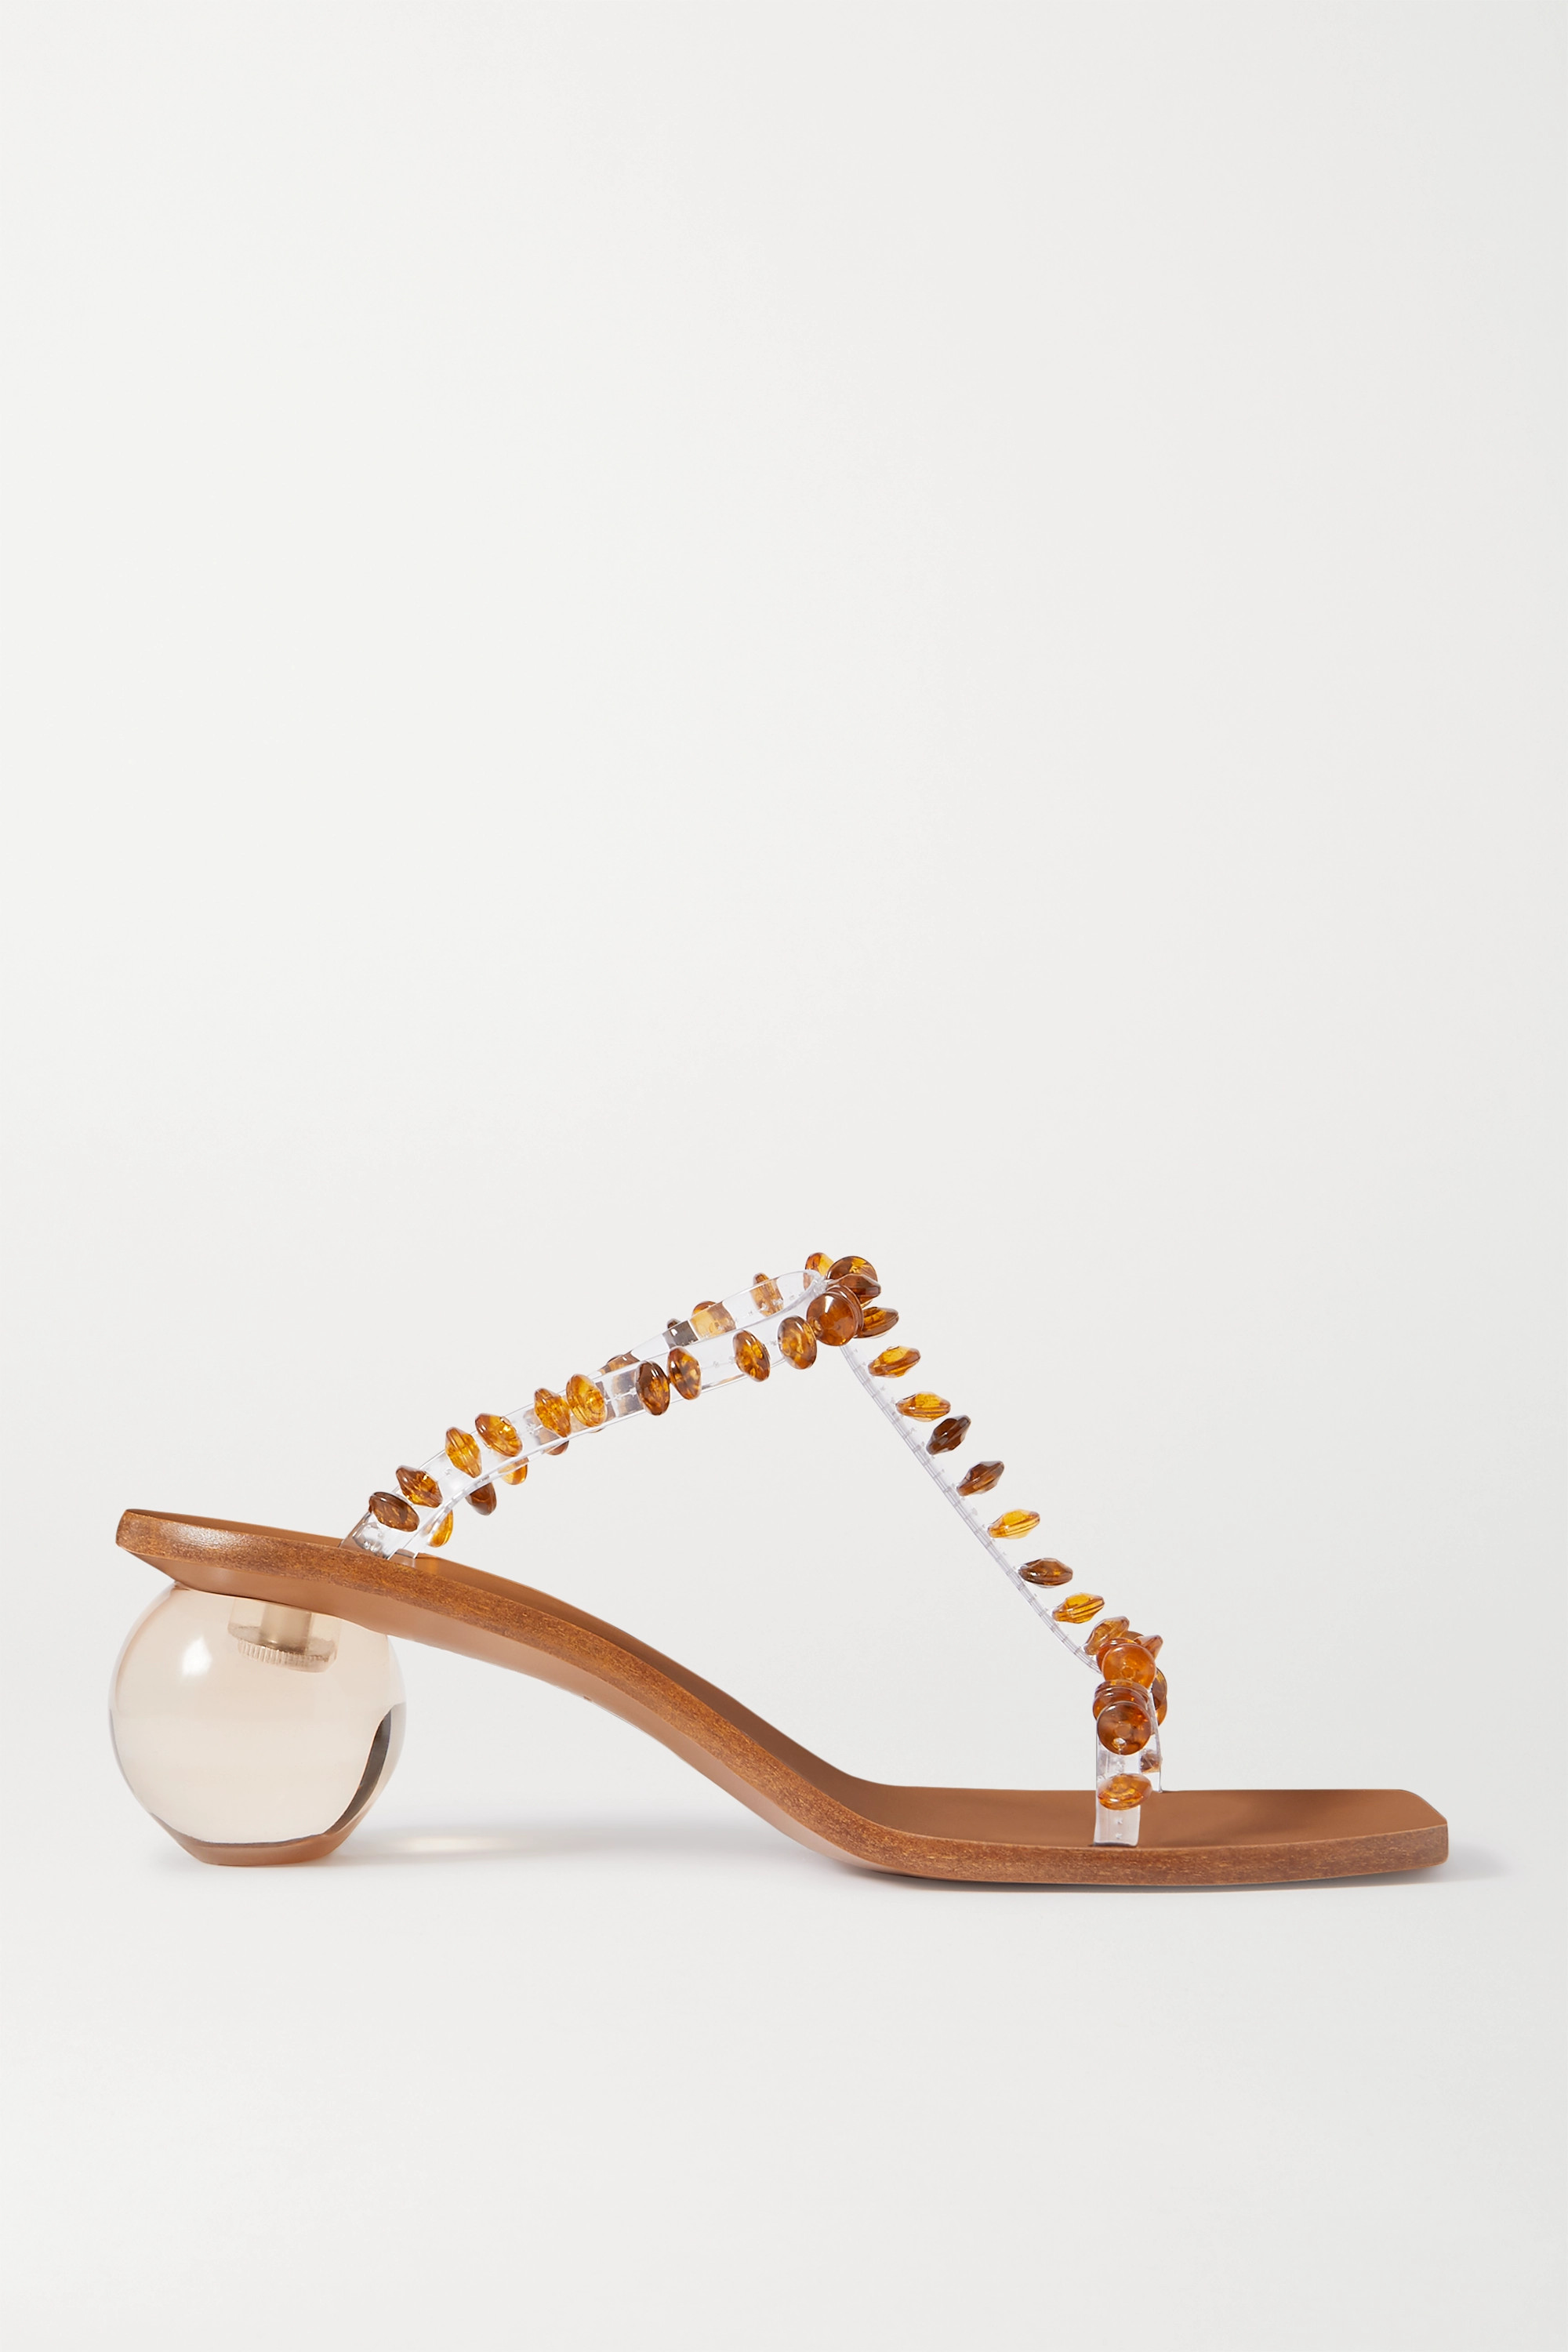 Clear Clio Bead-embellished Pvc Mules | Cult Gaia